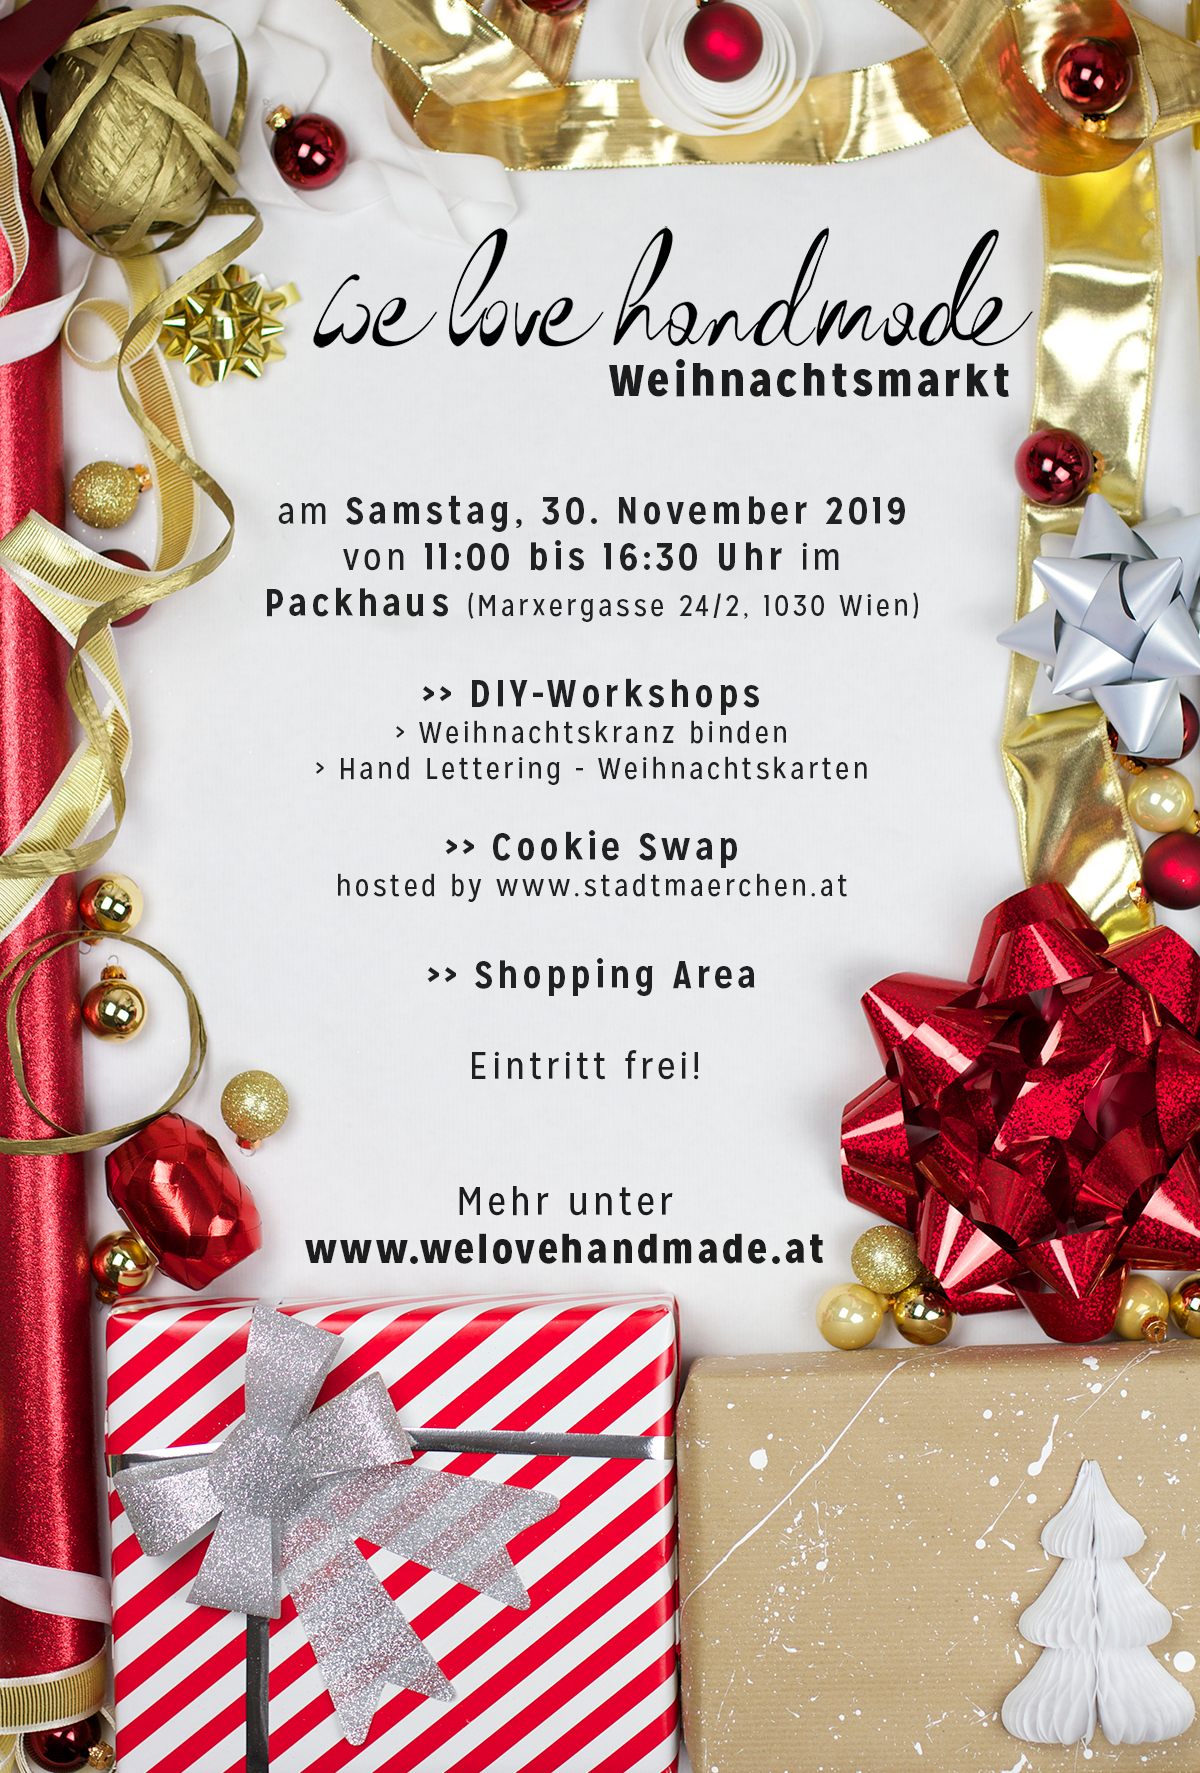 Weihnachtsmarkt Flyer | we love handmade